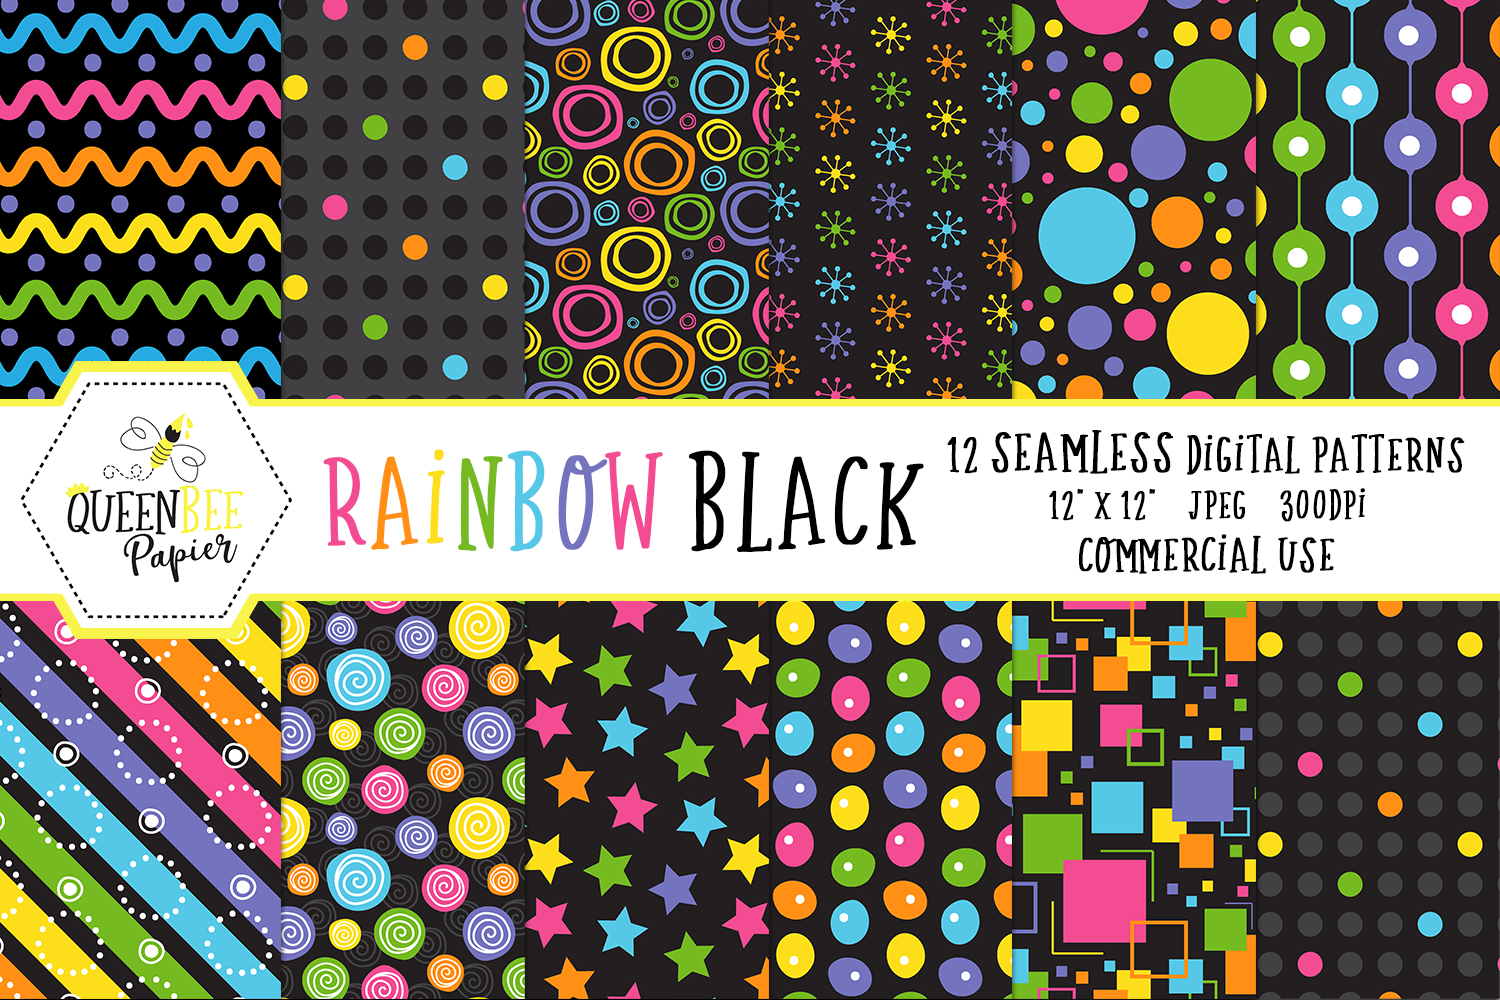 Download Free Seamless Rainbow Black Digital Paper Graphic By Queen Bee Papier for Cricut Explore, Silhouette and other cutting machines.